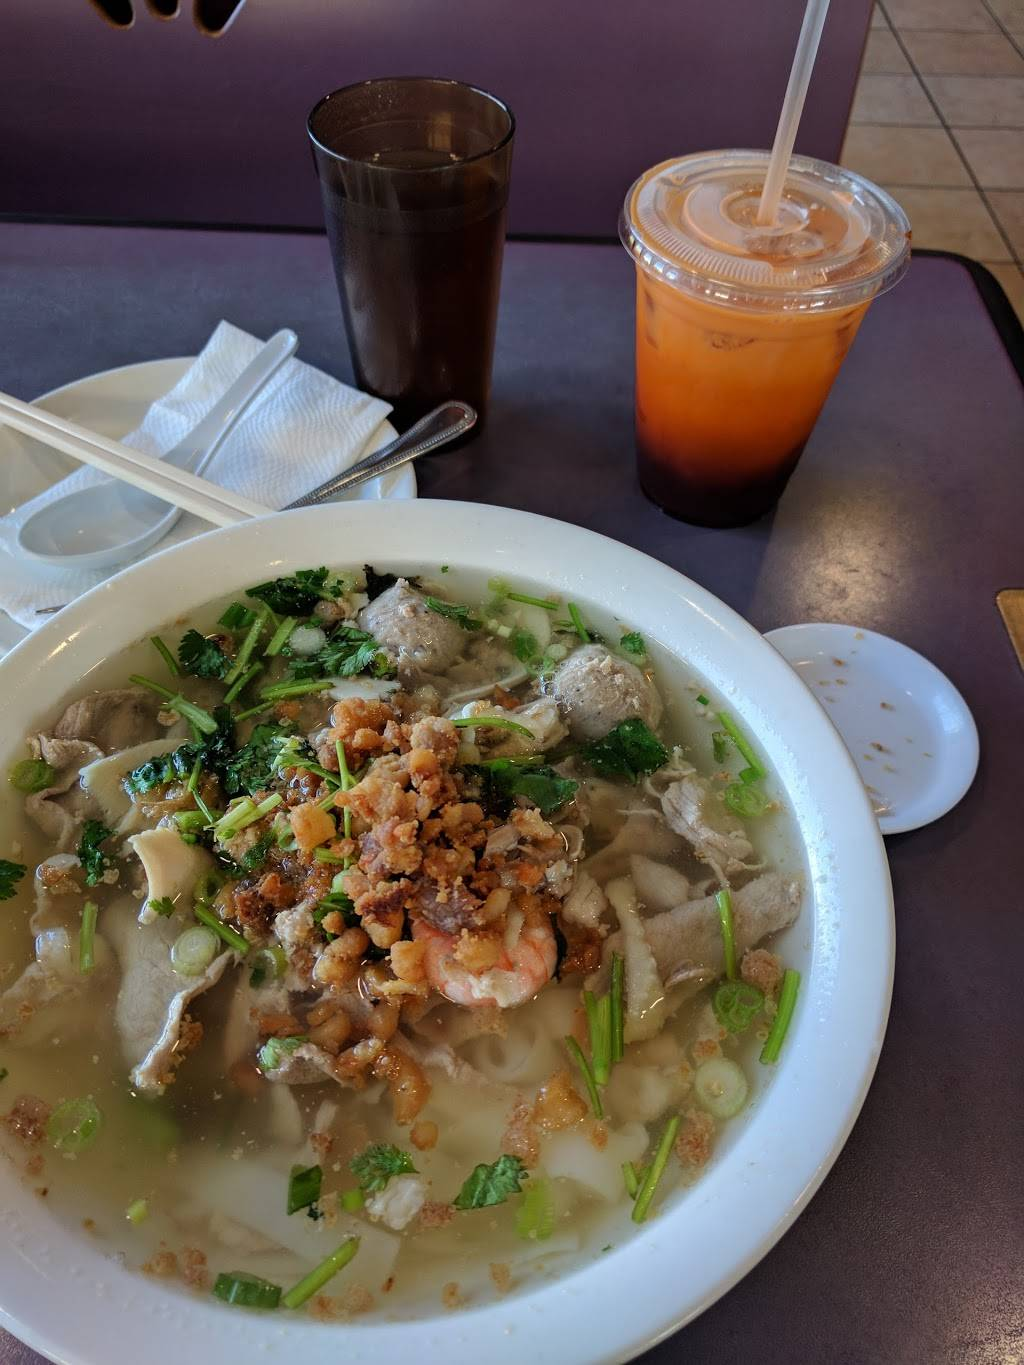 Red Bowl Noodles | restaurant | 6917 Mission St, Daly City, CA 94014, USA | 6509948886 OR +1 650-994-8886